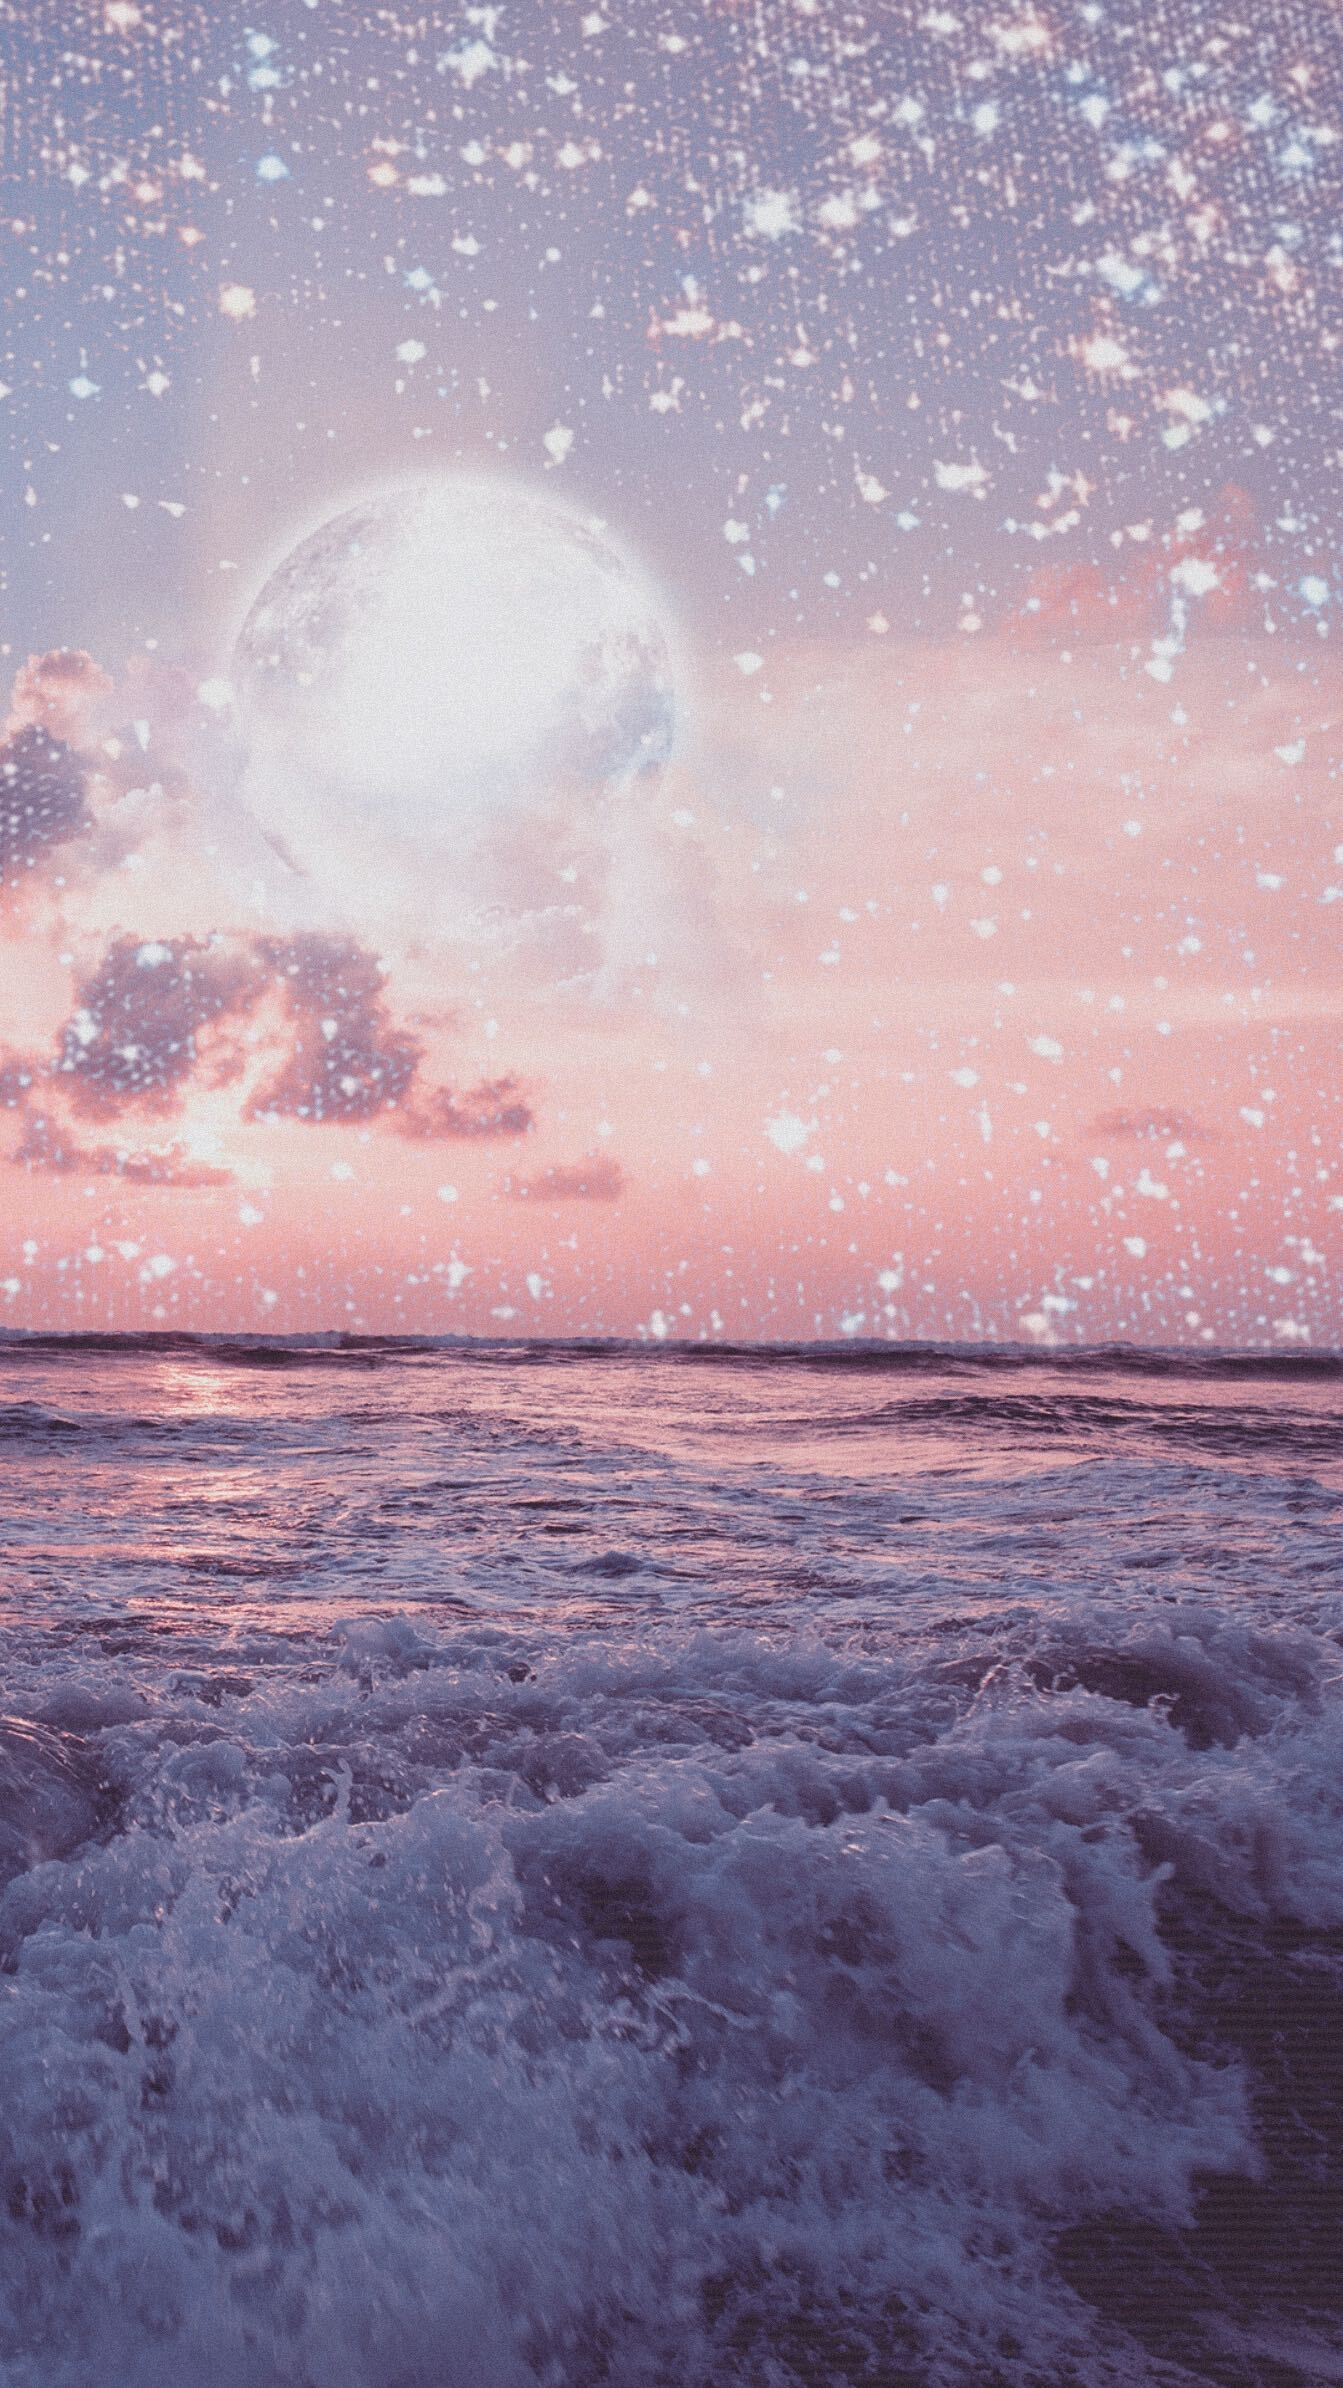 Indie Aesthetic Wallpapers Anime Scenery Wallpaper Scenery Wallpaper Aesthetic Pastel Wallpaper